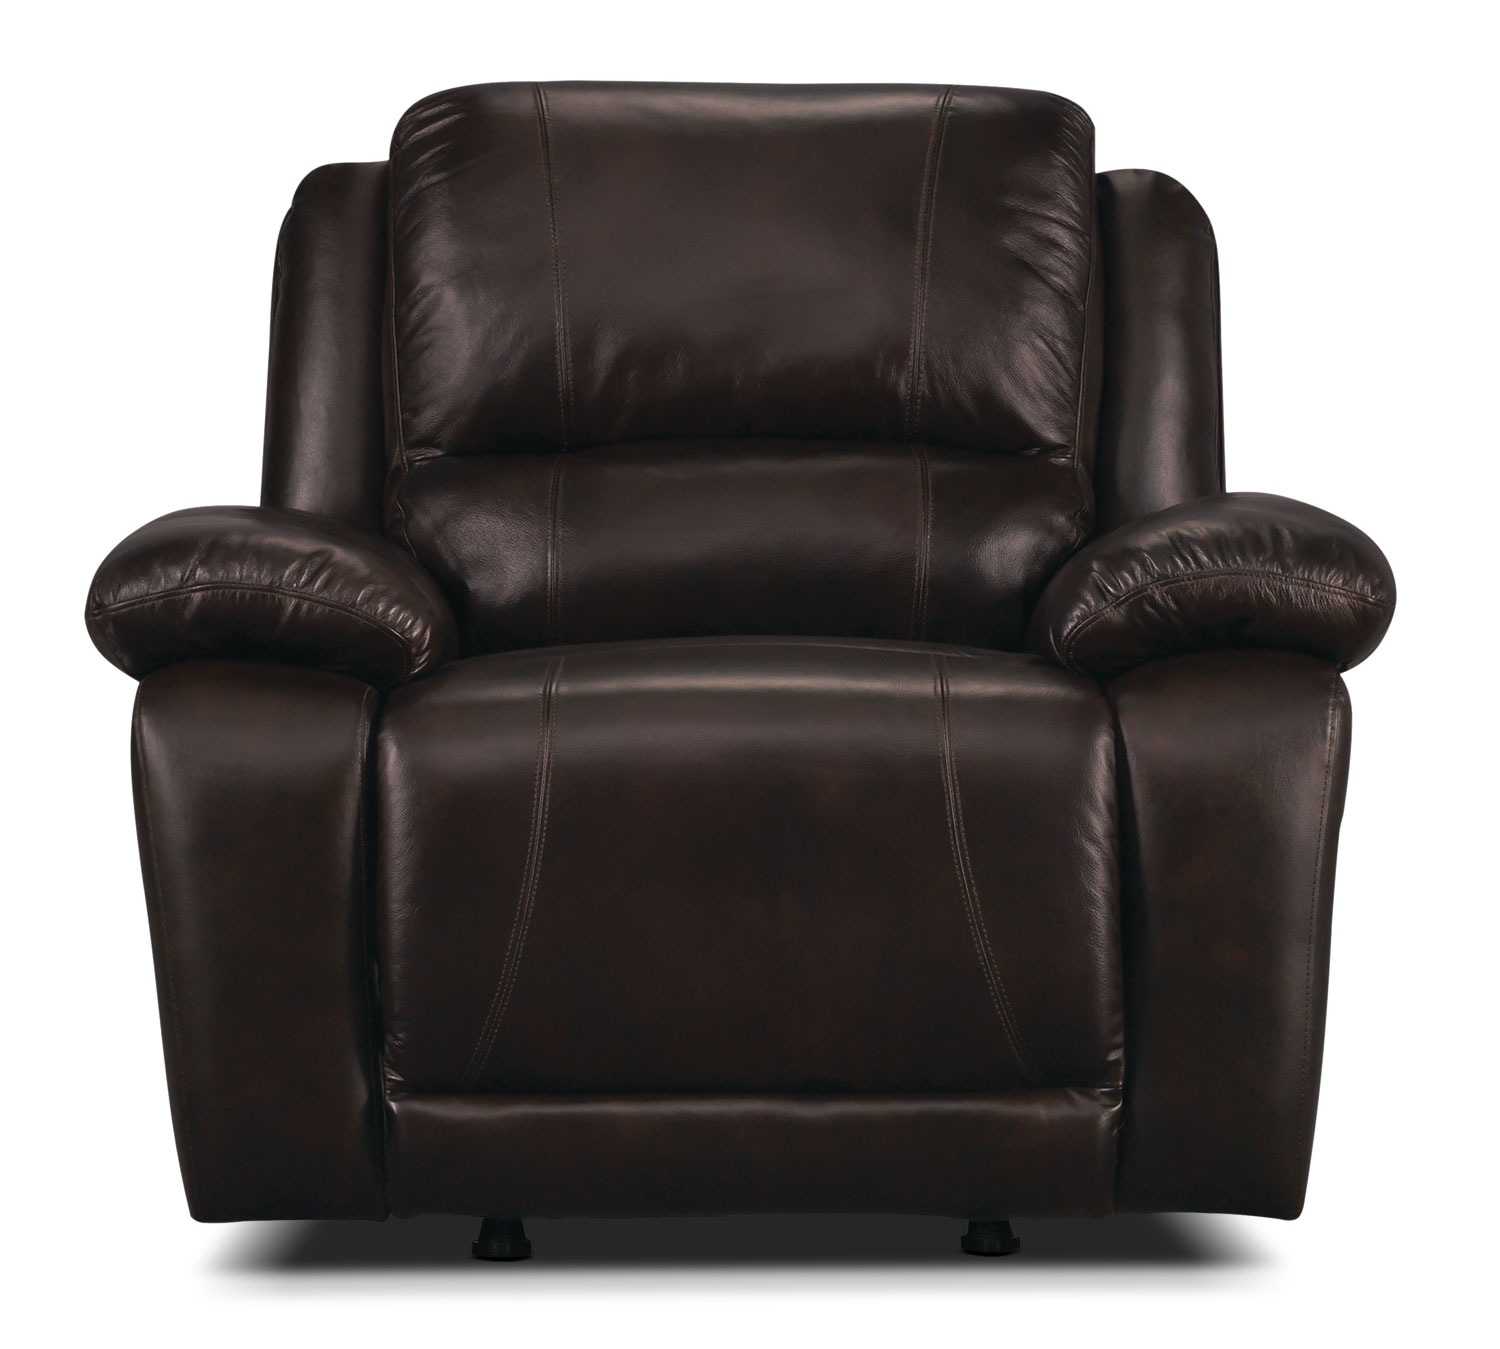 Living Room Furniture - Marco Genuine Leather Reclining Chair - Chocolate